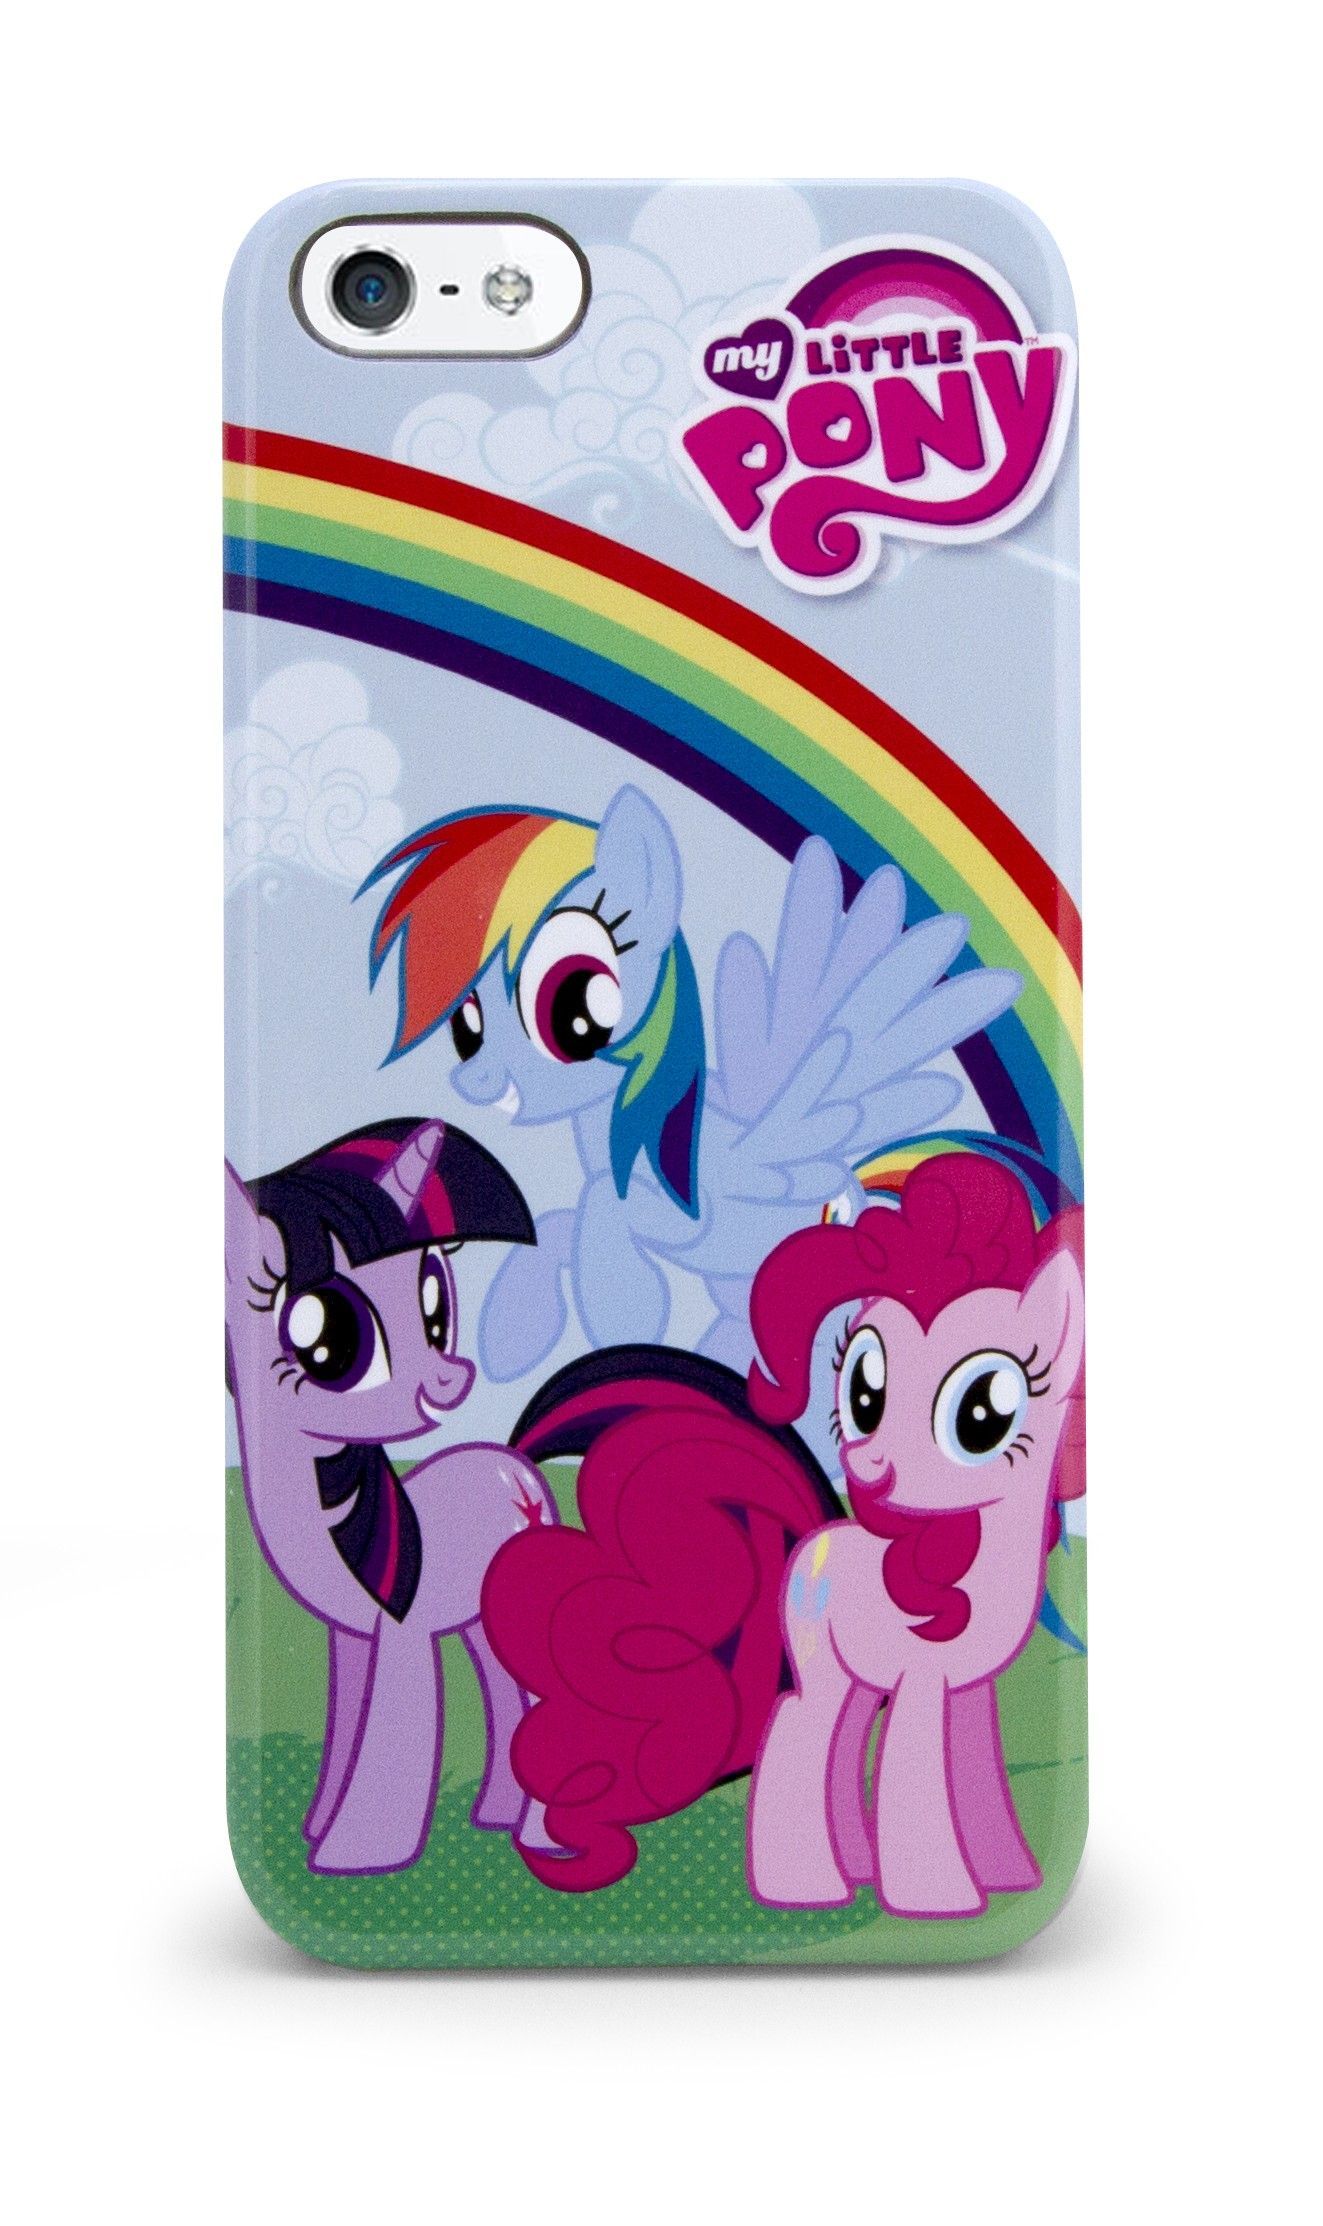 the best attitude 1dab7 9a433 My Little Pony Rainbow Cell Case - Phone Cases - Whats New | i-love ...